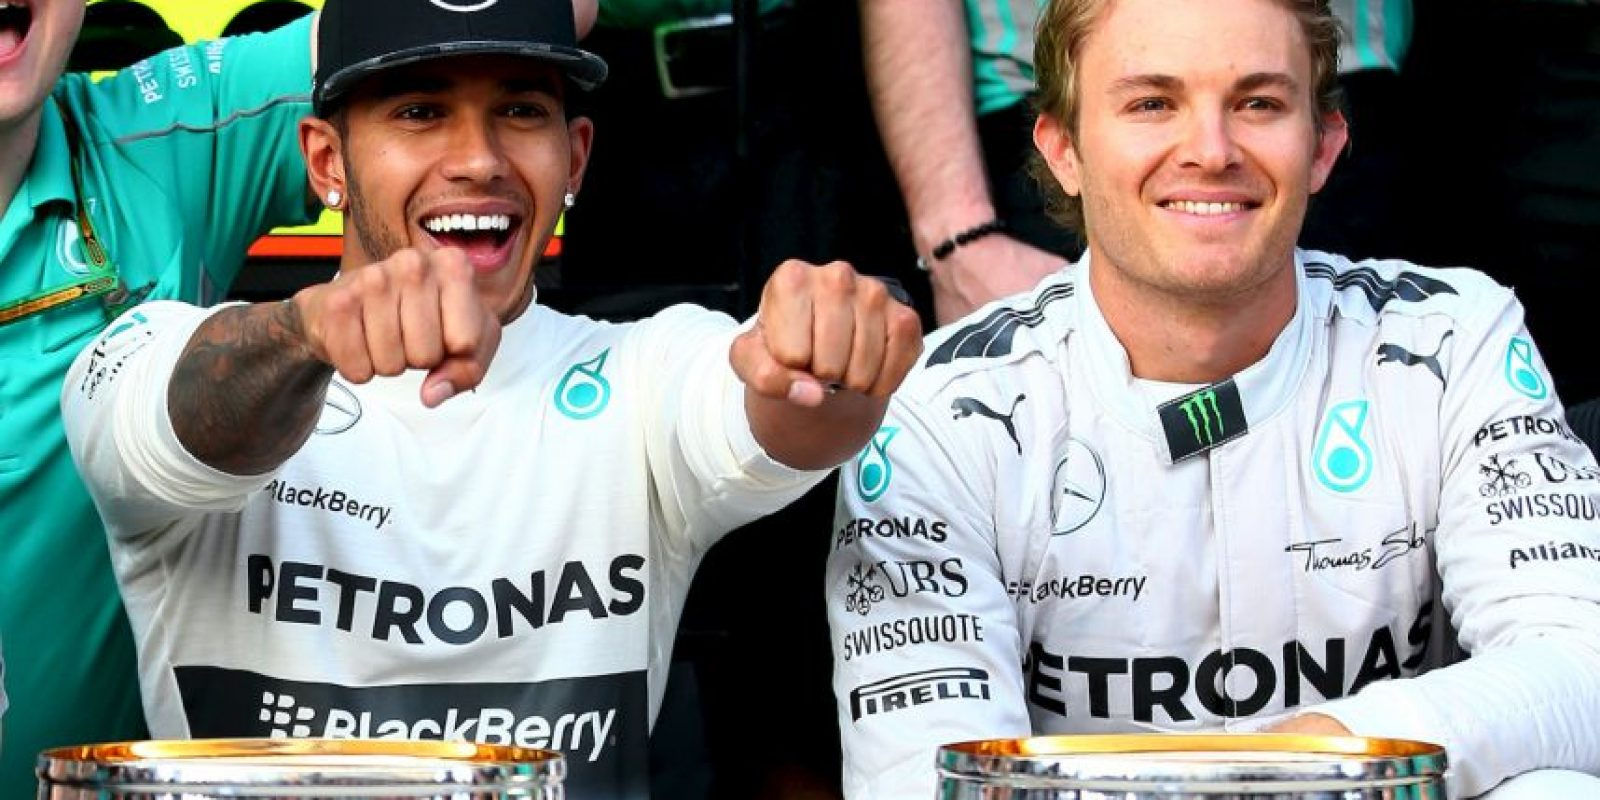 Lewis Hamilton vs. Nico Rosberg Foto: Getty Images